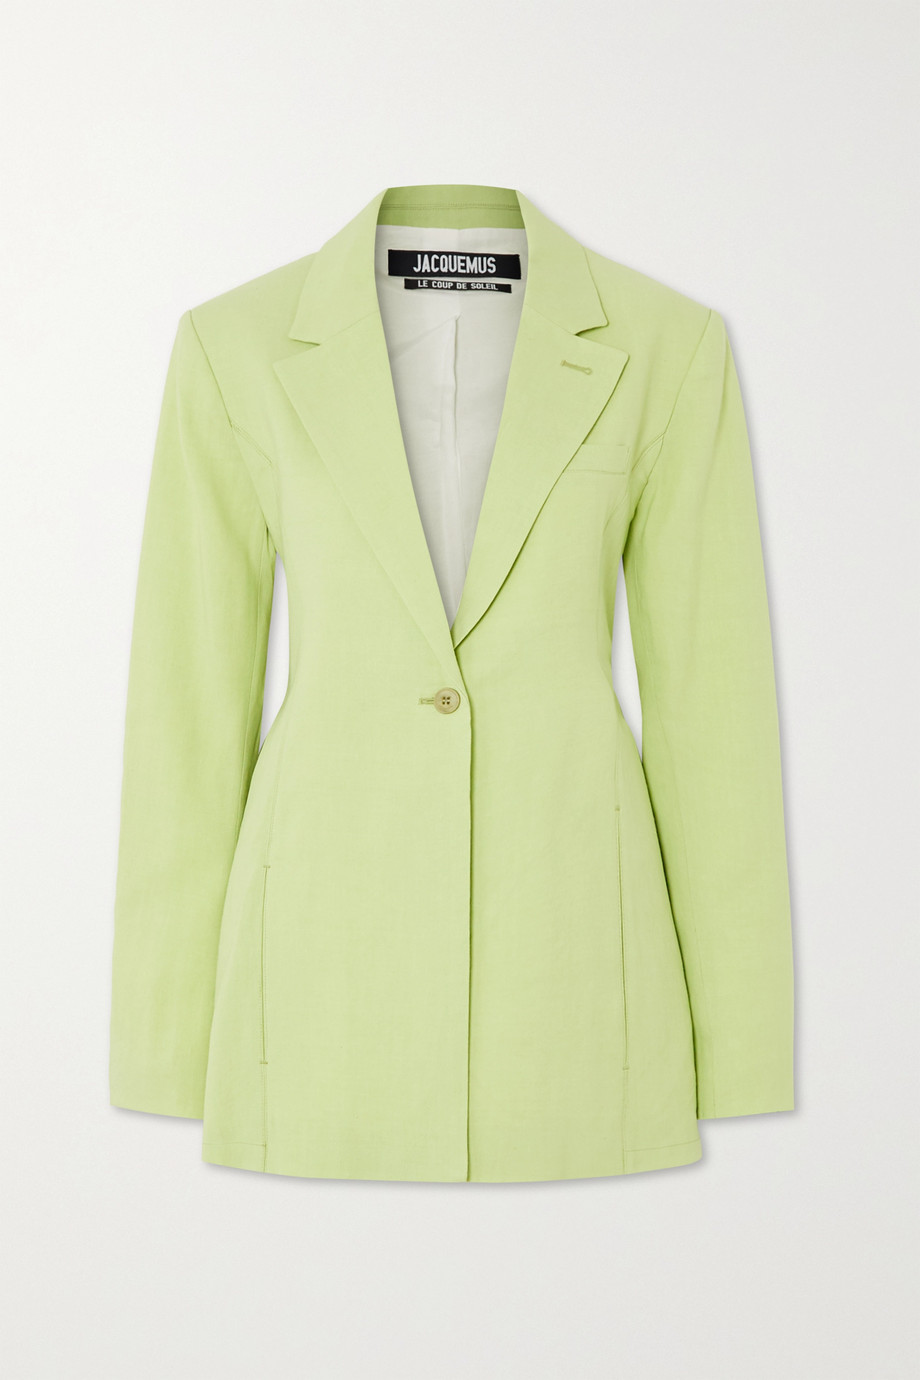 Jacquemus Tablier hemp-blend blazer